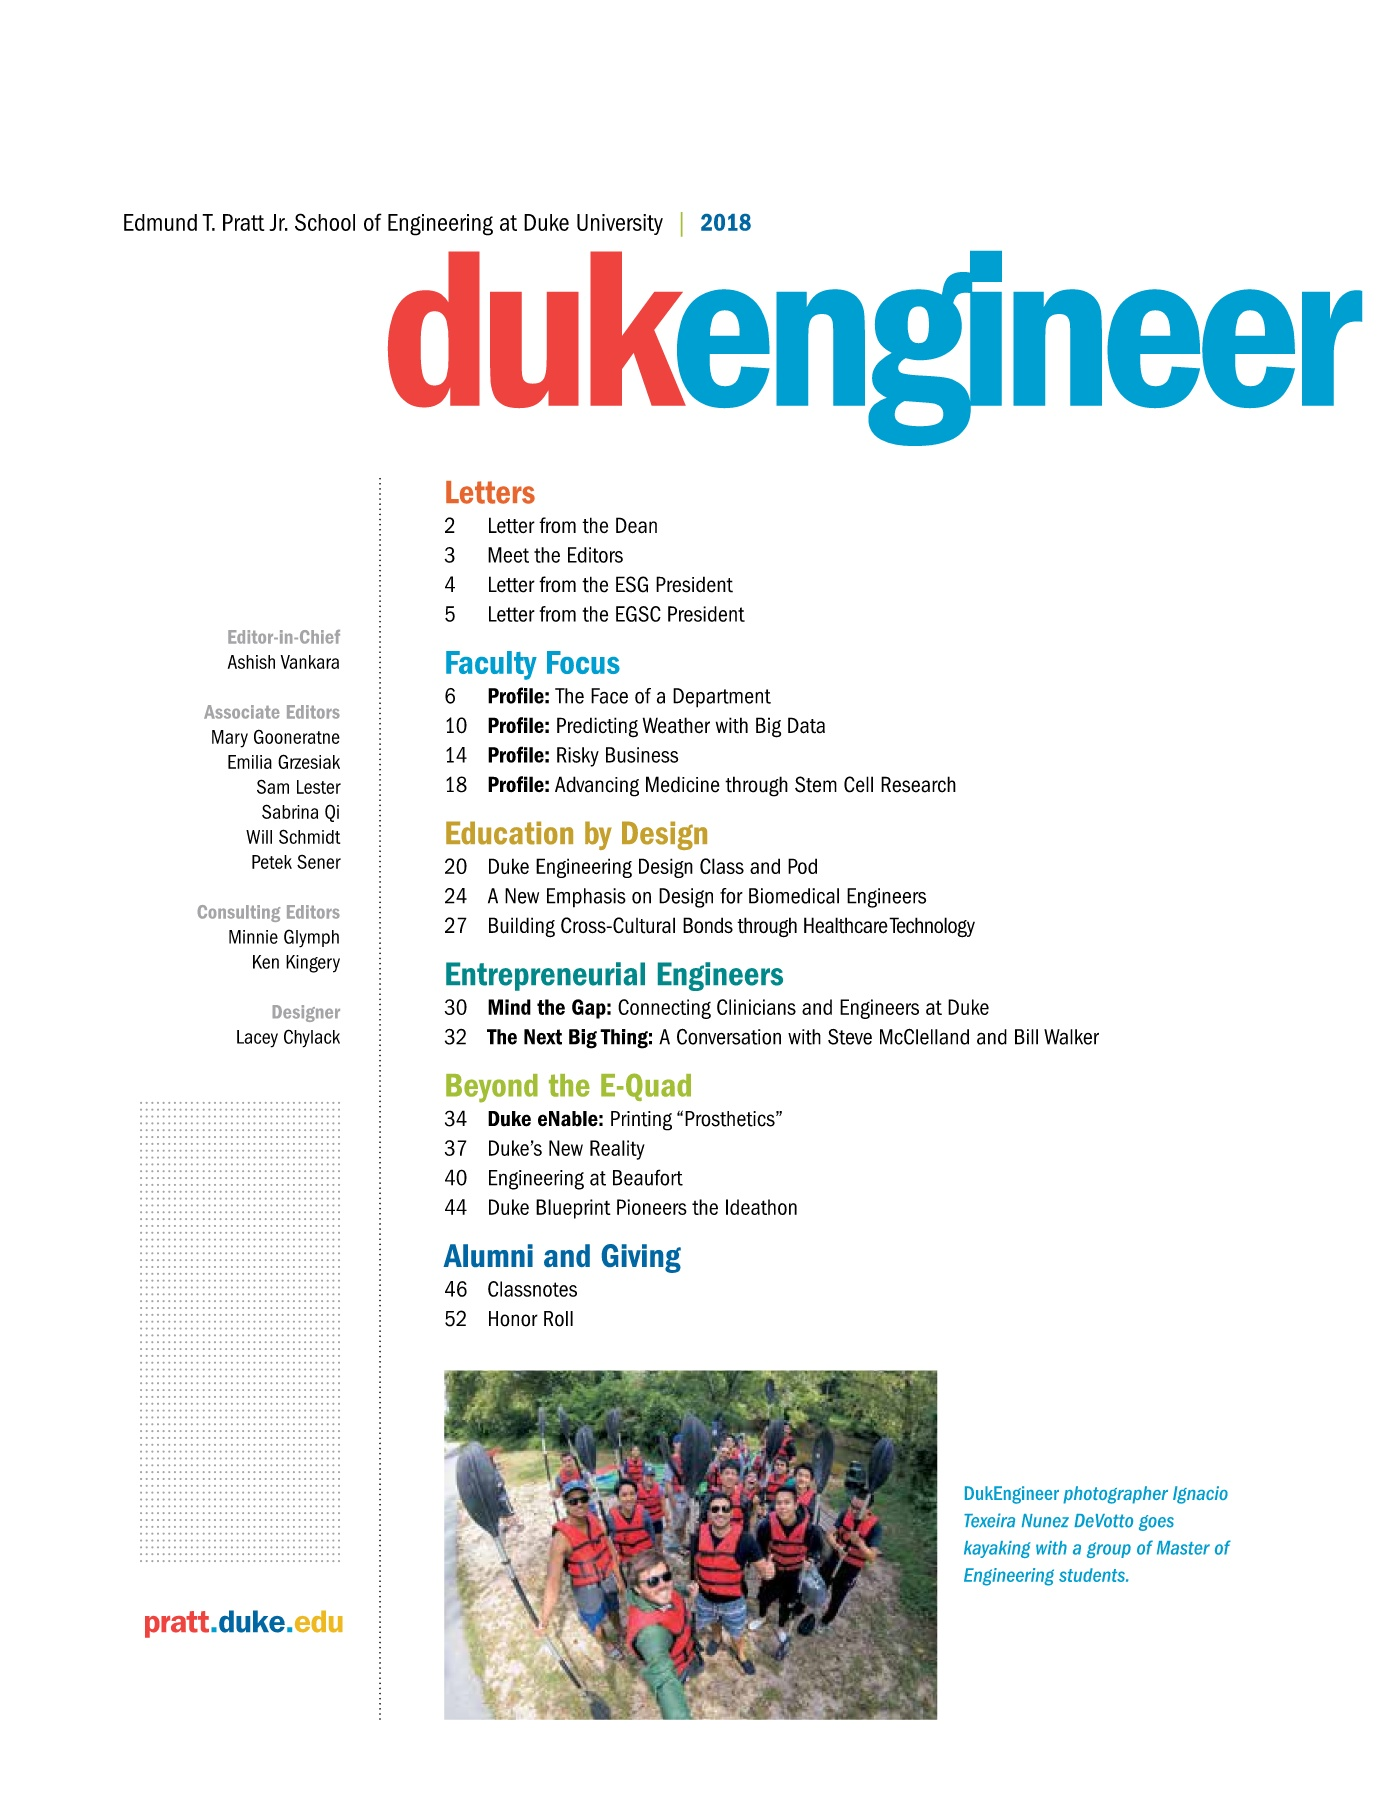 Dukengineer 2018 pages 1 50 text version anyflip each year a volunteer team of student editors and writers prepare a magazine that chronicles their experiences and perspectives fandeluxe Images